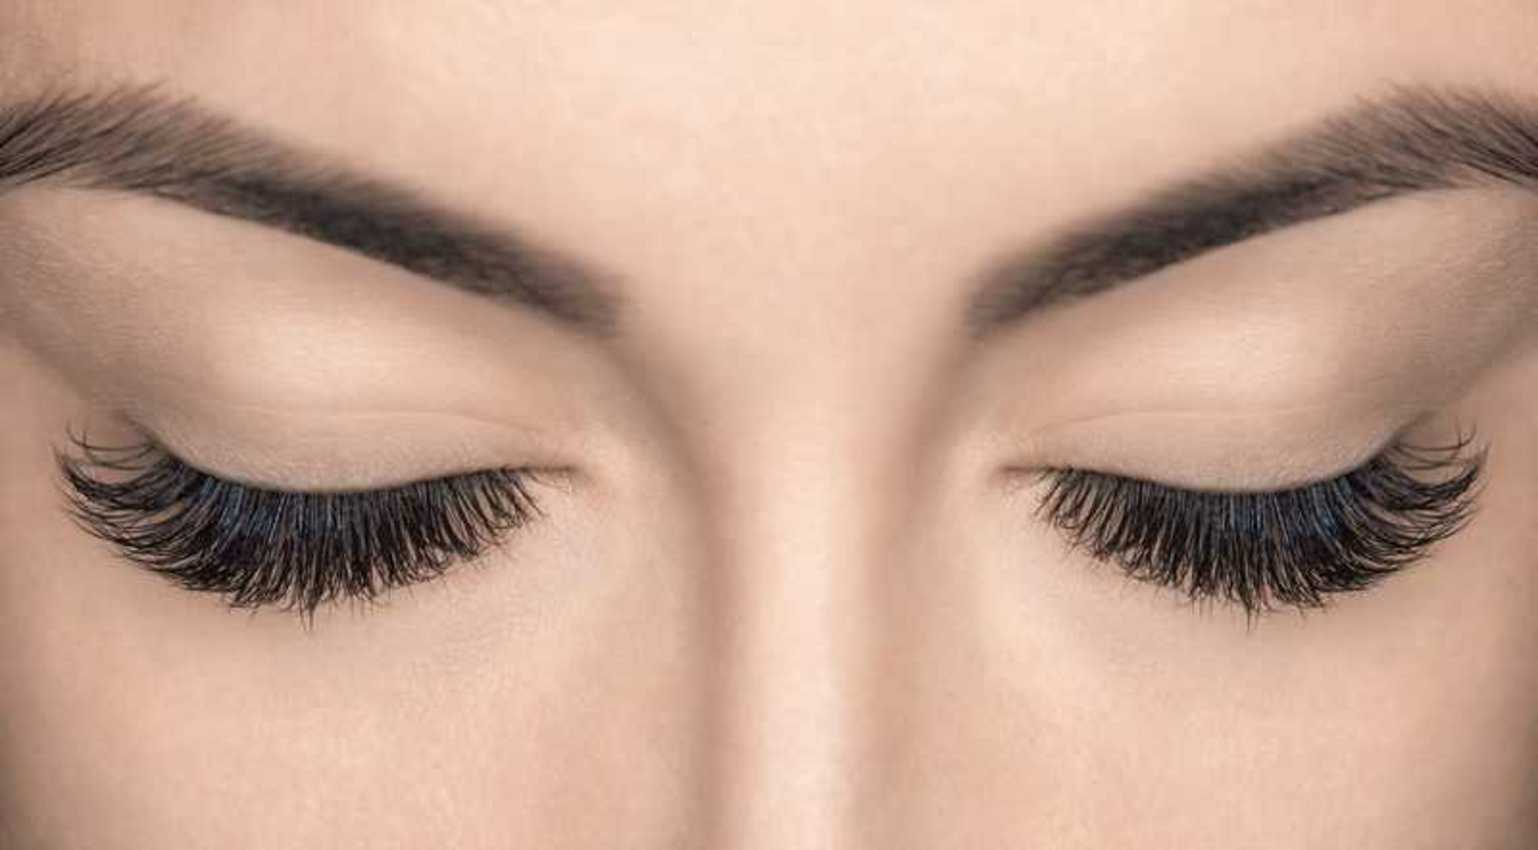 Are Eyelash Extensions Safe? How to use them with contacts?